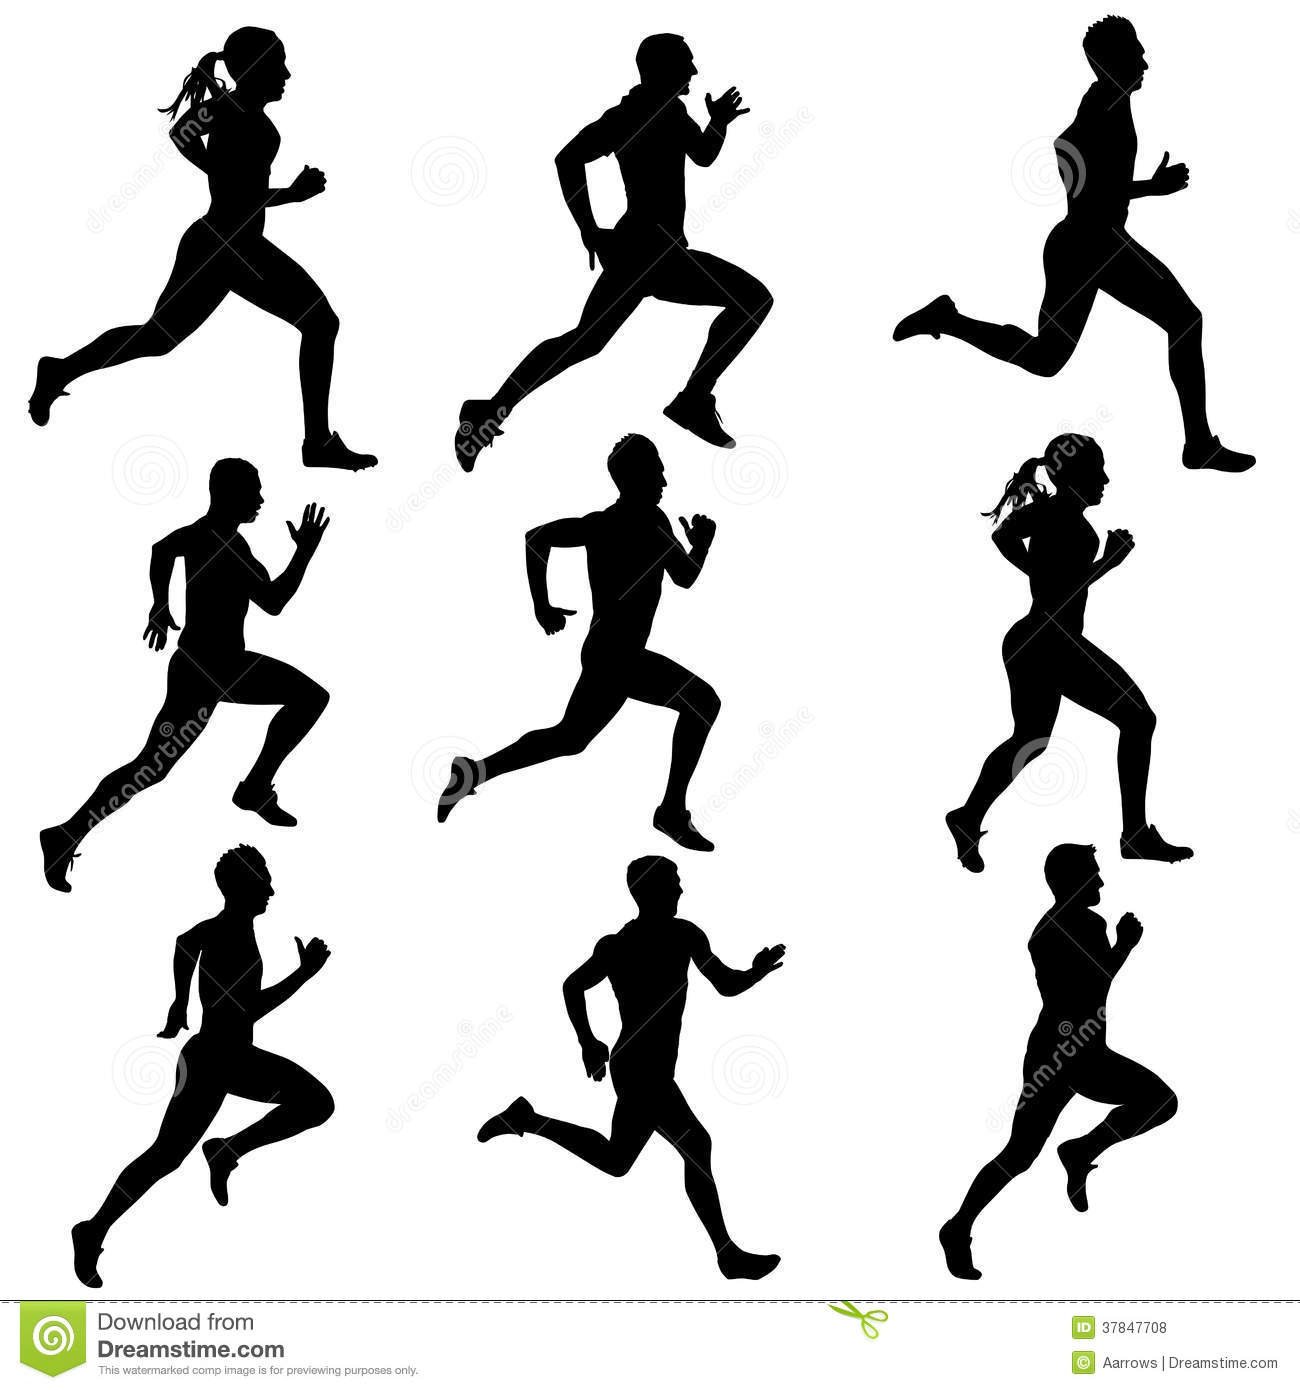 exercising clipart running 20 free Cliparts | Download ...